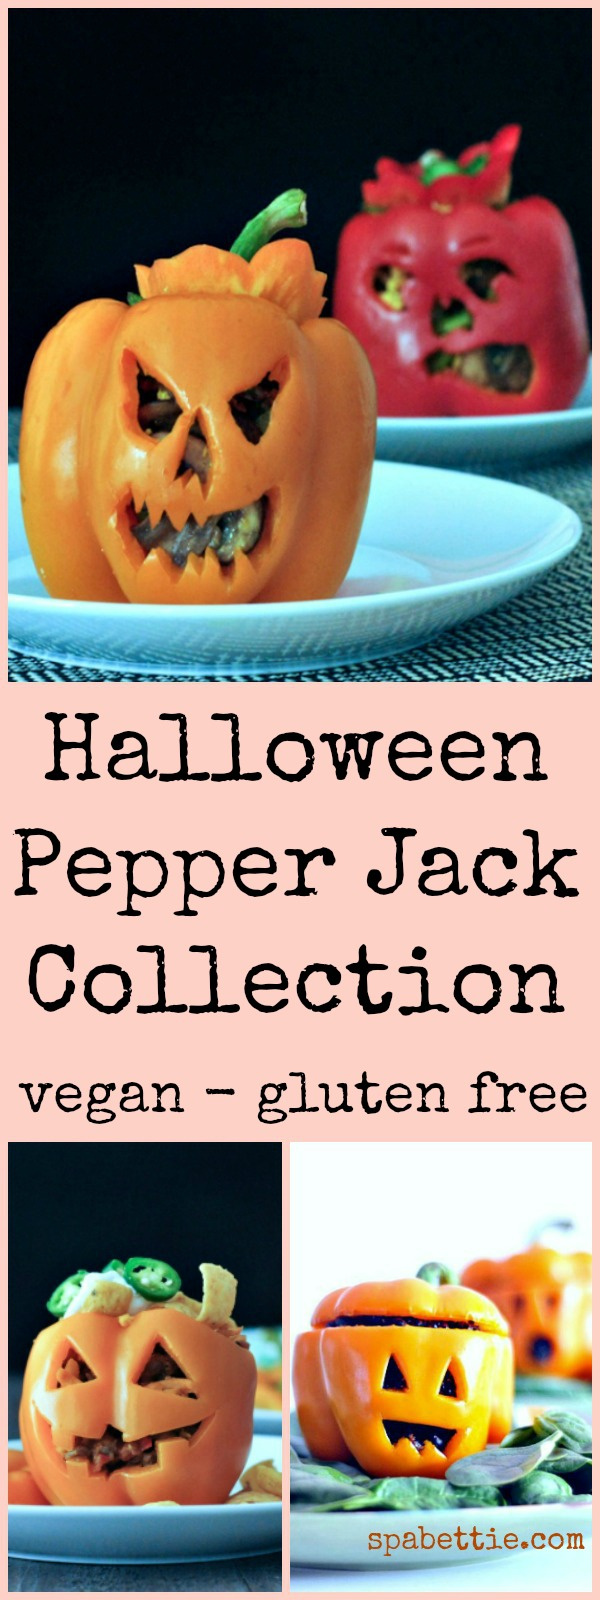 Halloween Pepper Jack Collection @spabettie #vegan #glutenfree